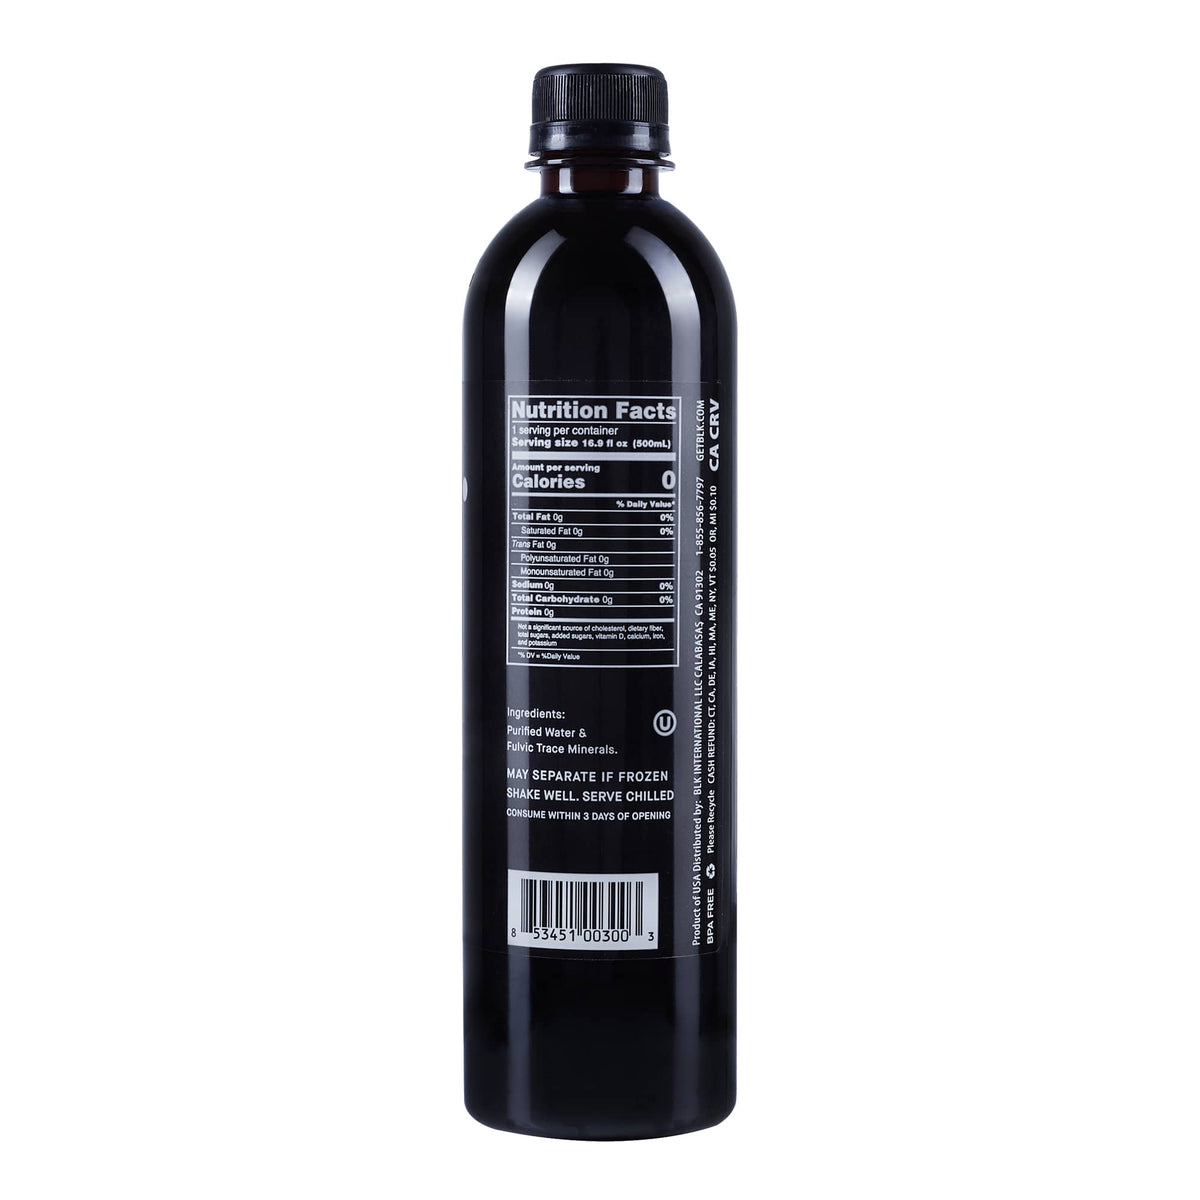 blk. Electric Coconut - 12pk / 16.9 fl oz / 500ml Bottles